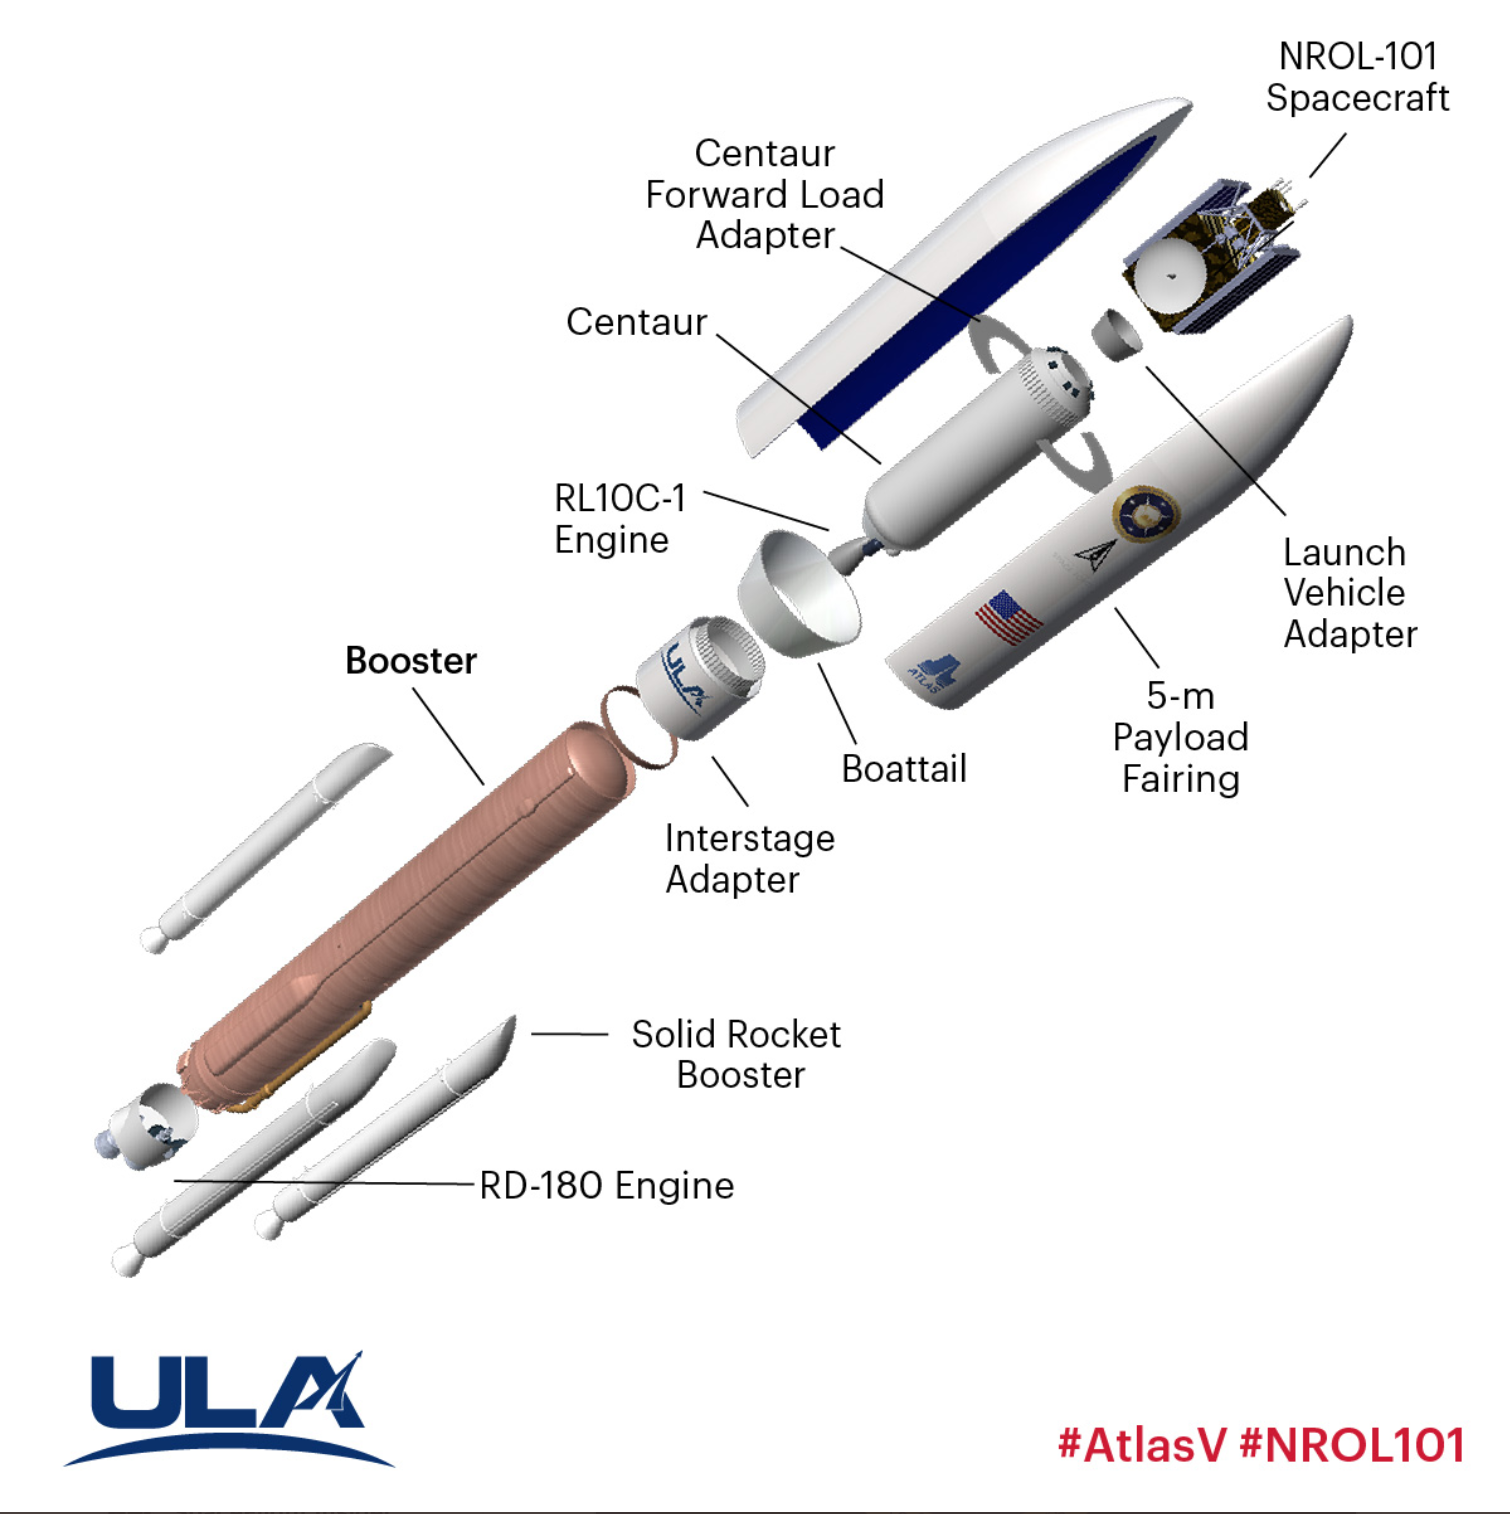 Illustration of the Atlas V rocket used to launch the NROL-101 mission today. Credit: United Launch Alliance